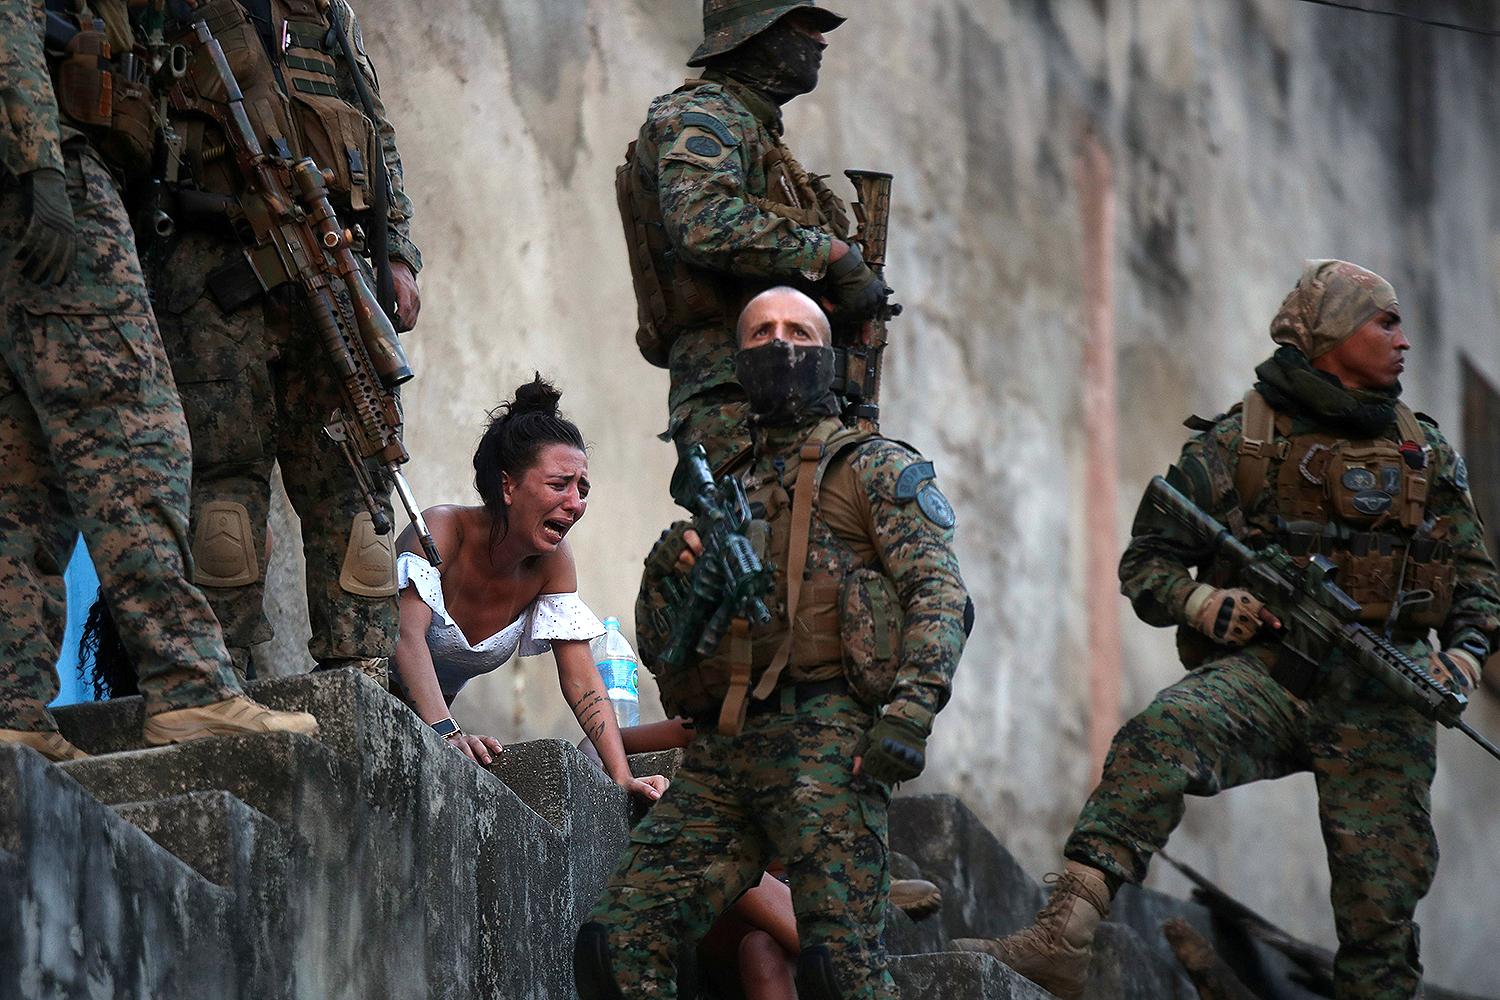 A woman reacts next to the body of a person who was shot during a police operation after heavy confrontations between drug gangs in Rio de Janeiro on Aug. 27. Ricardo Moraes/REUTERS